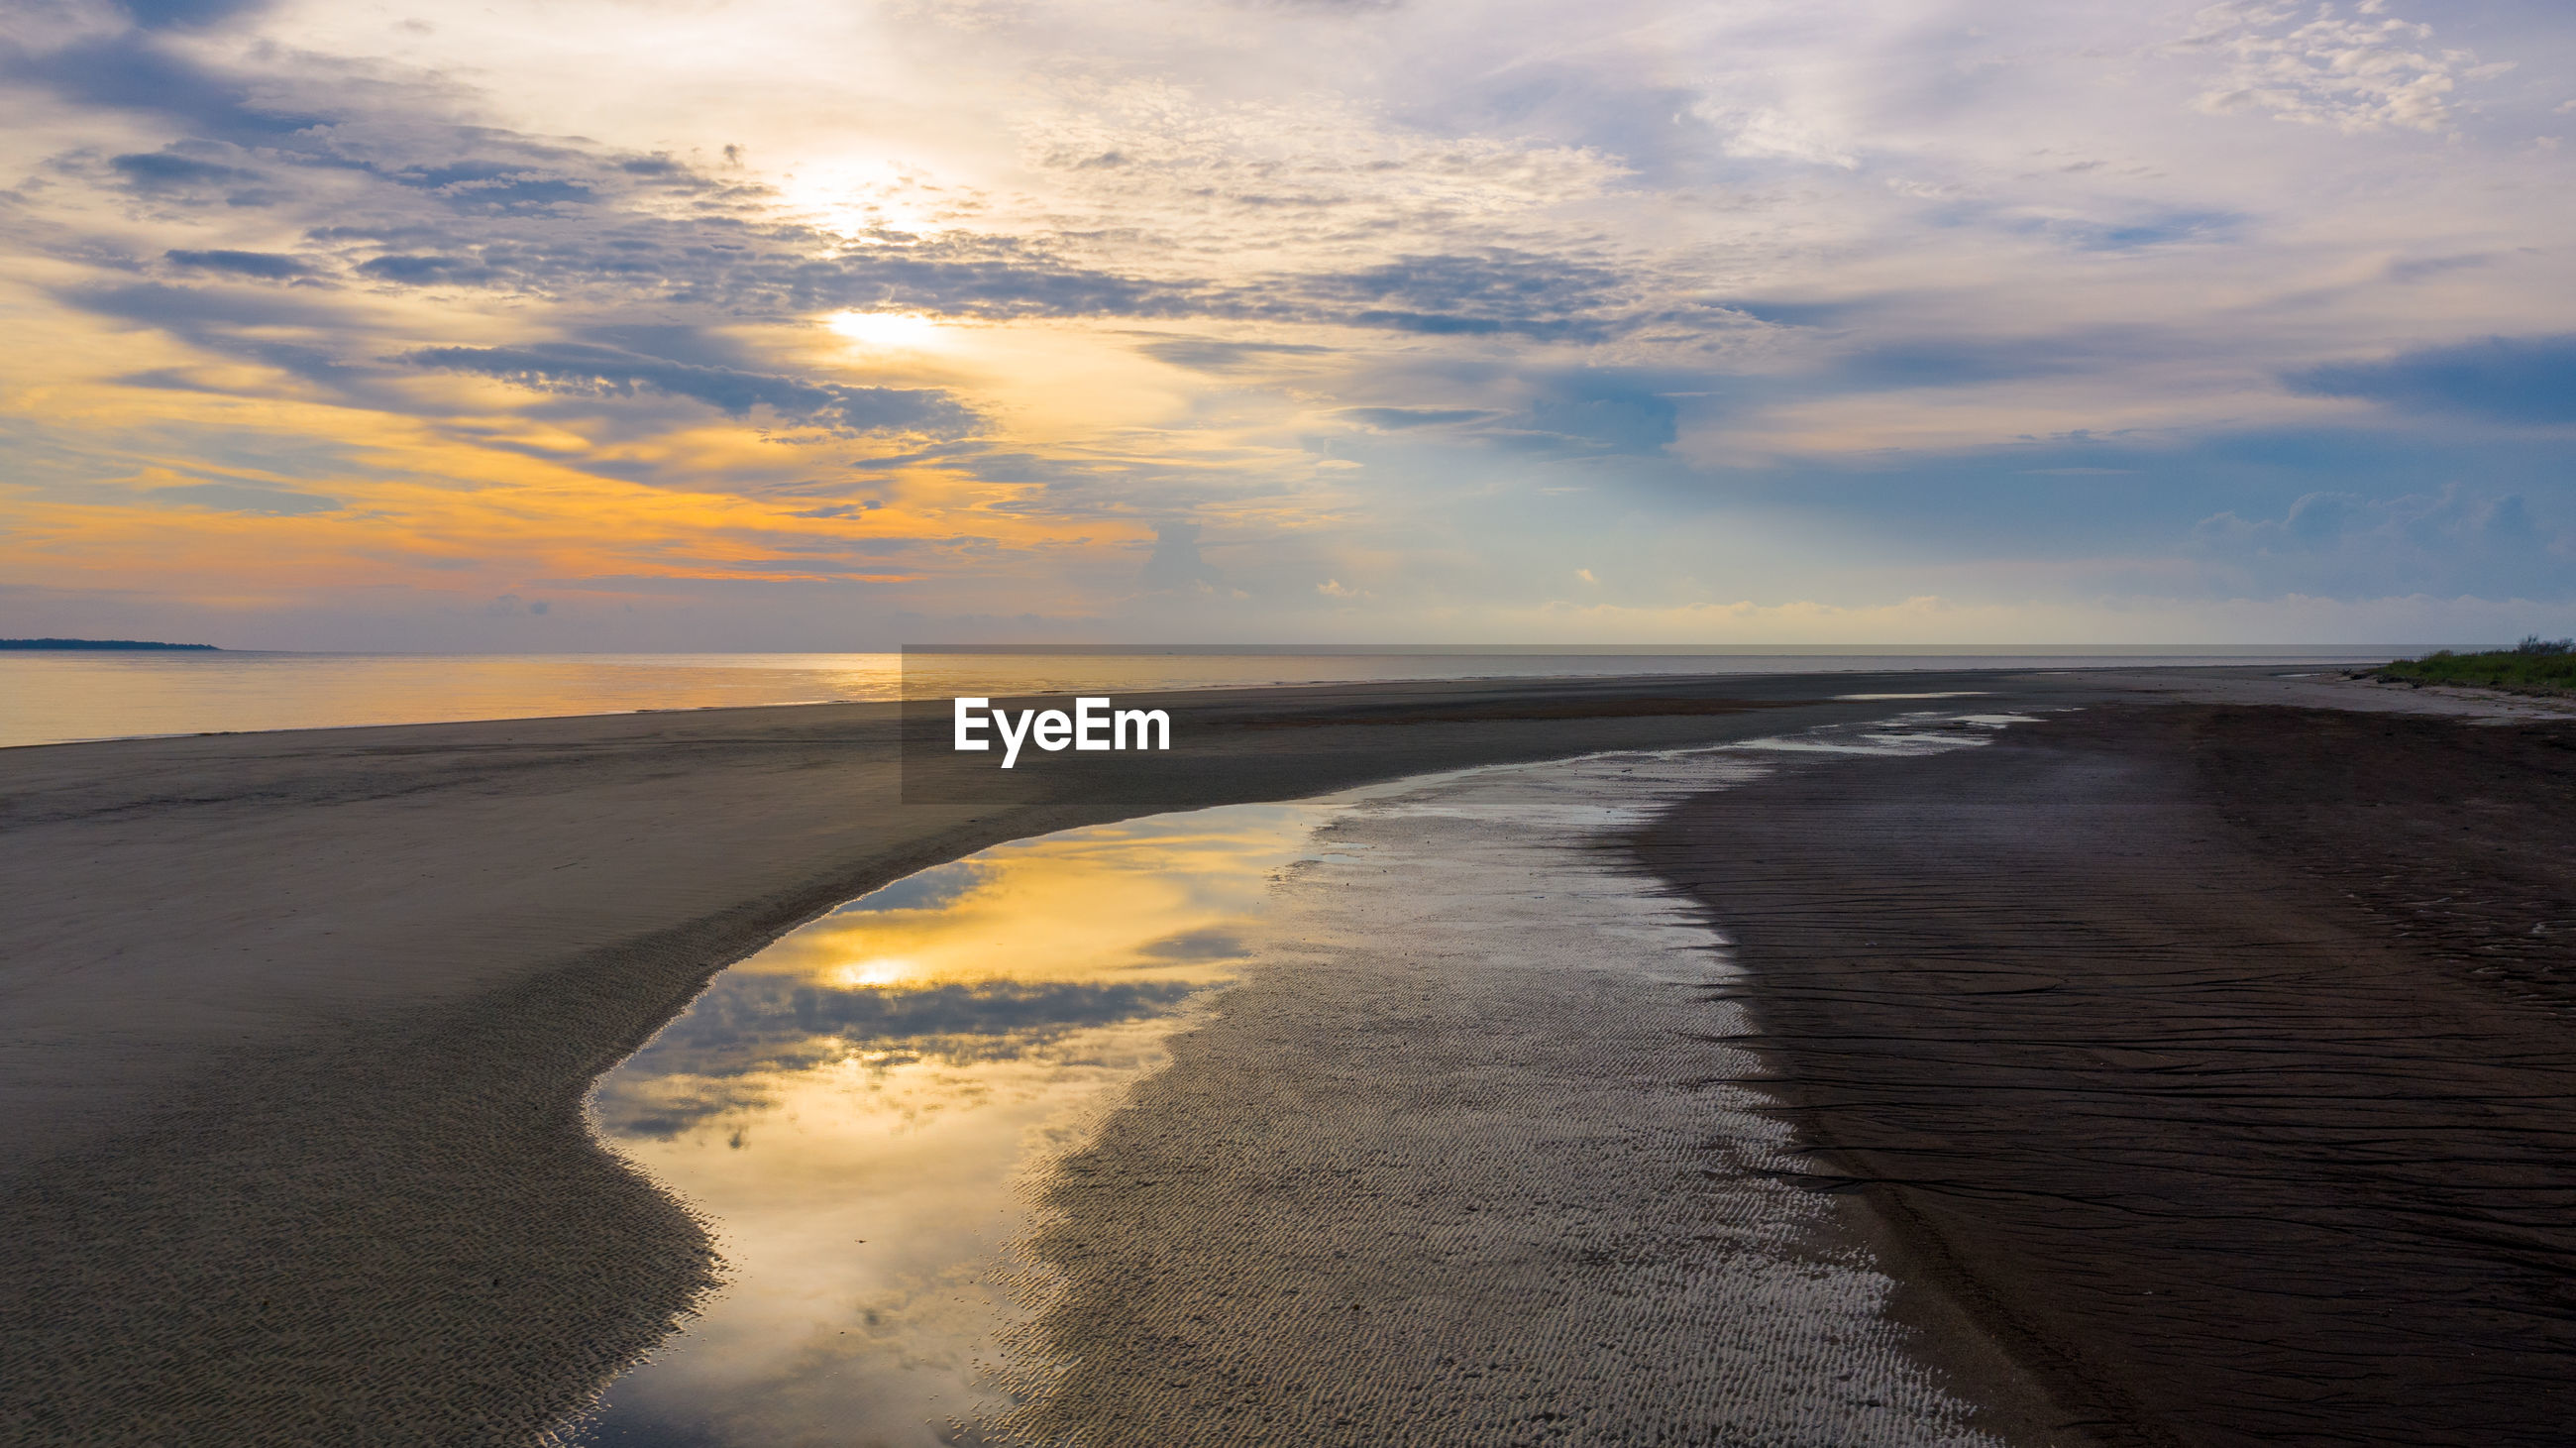 SCENIC VIEW OF WET BEACH AGAINST SKY DURING SUNSET